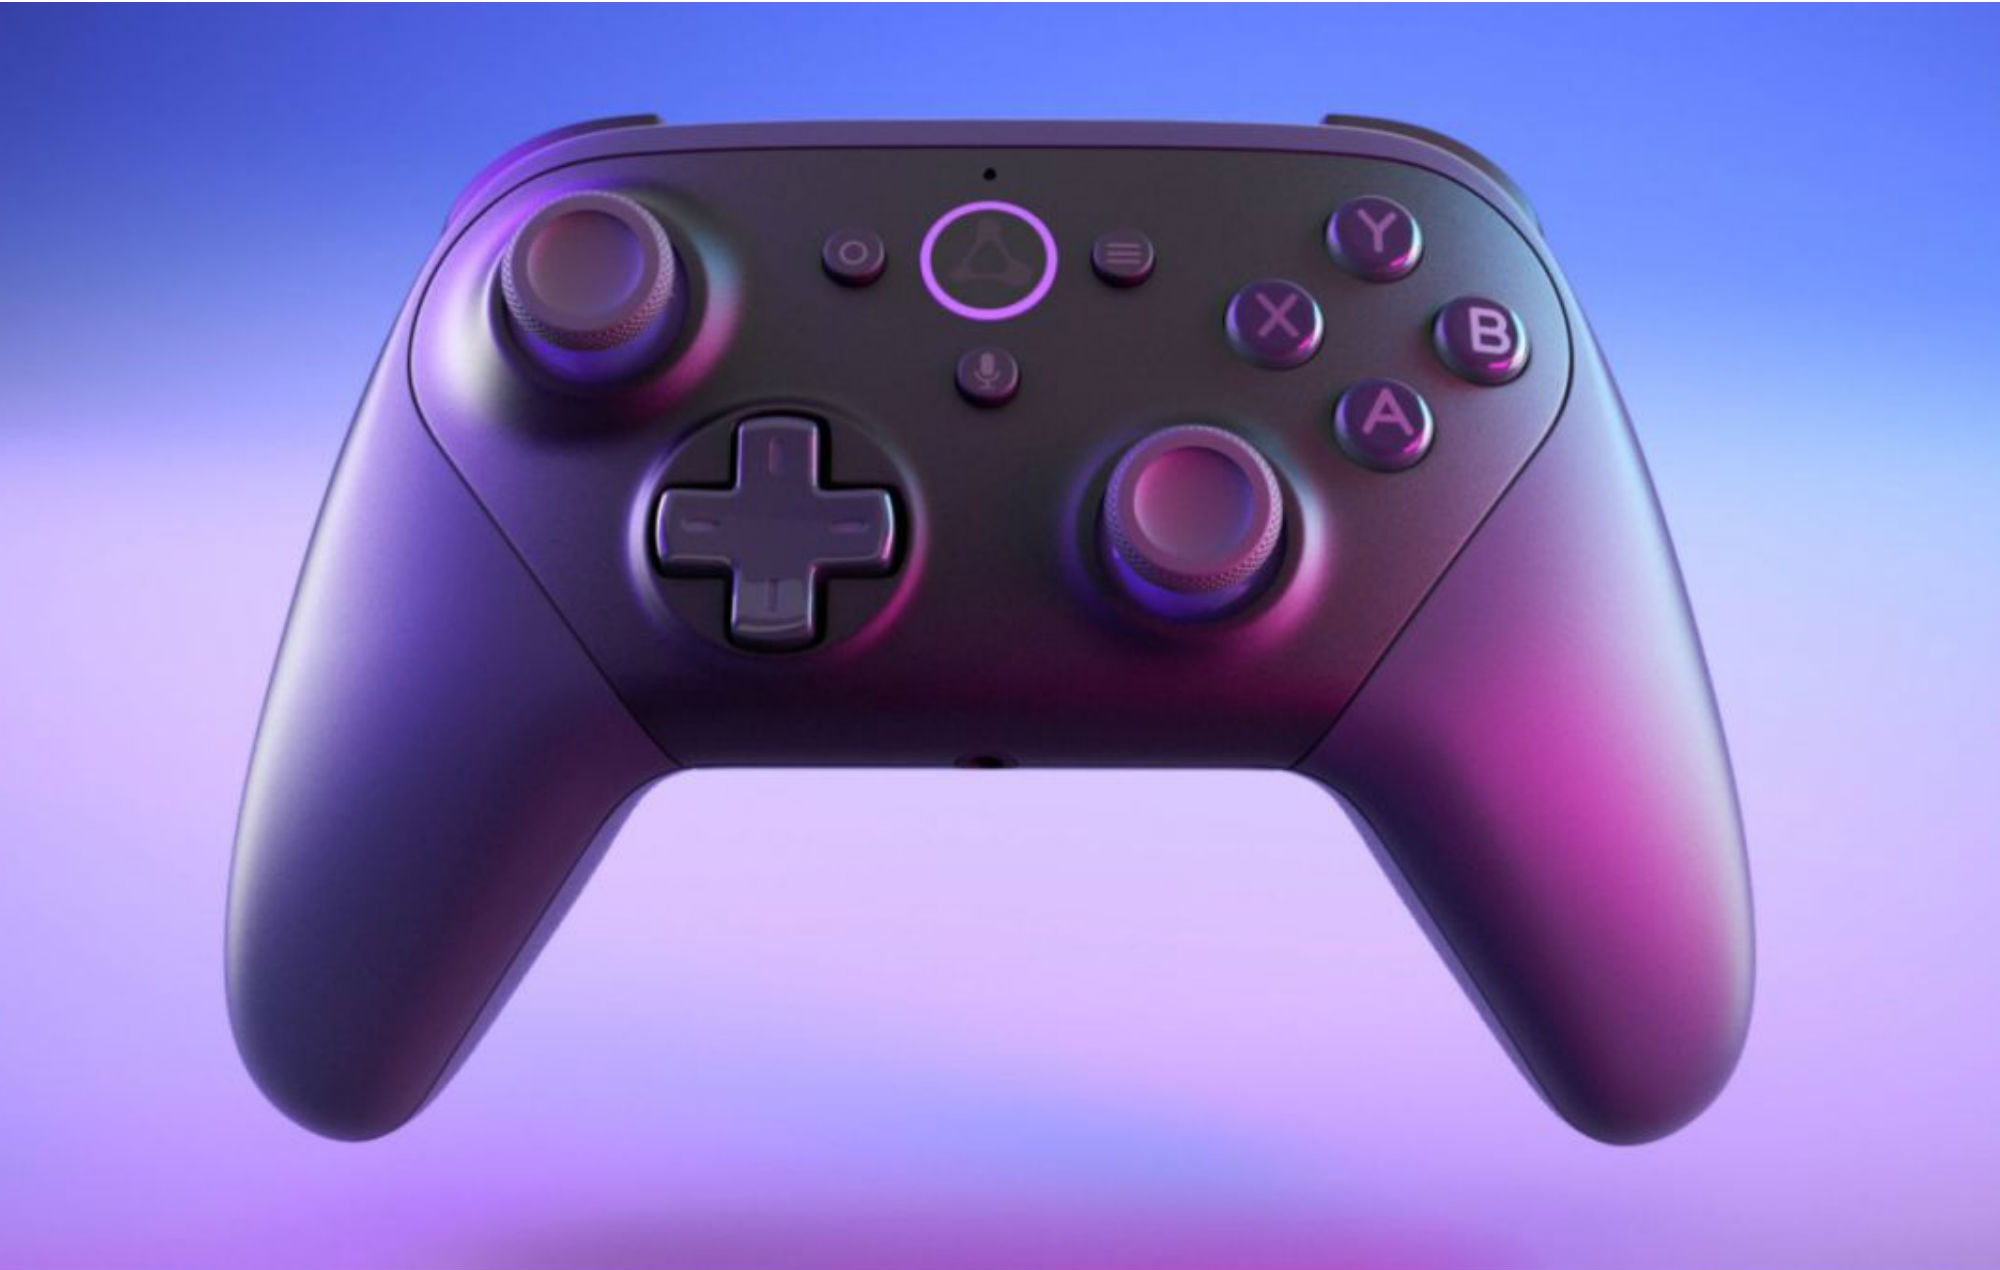 Amazon has begun early access for cloud gaming service Luna